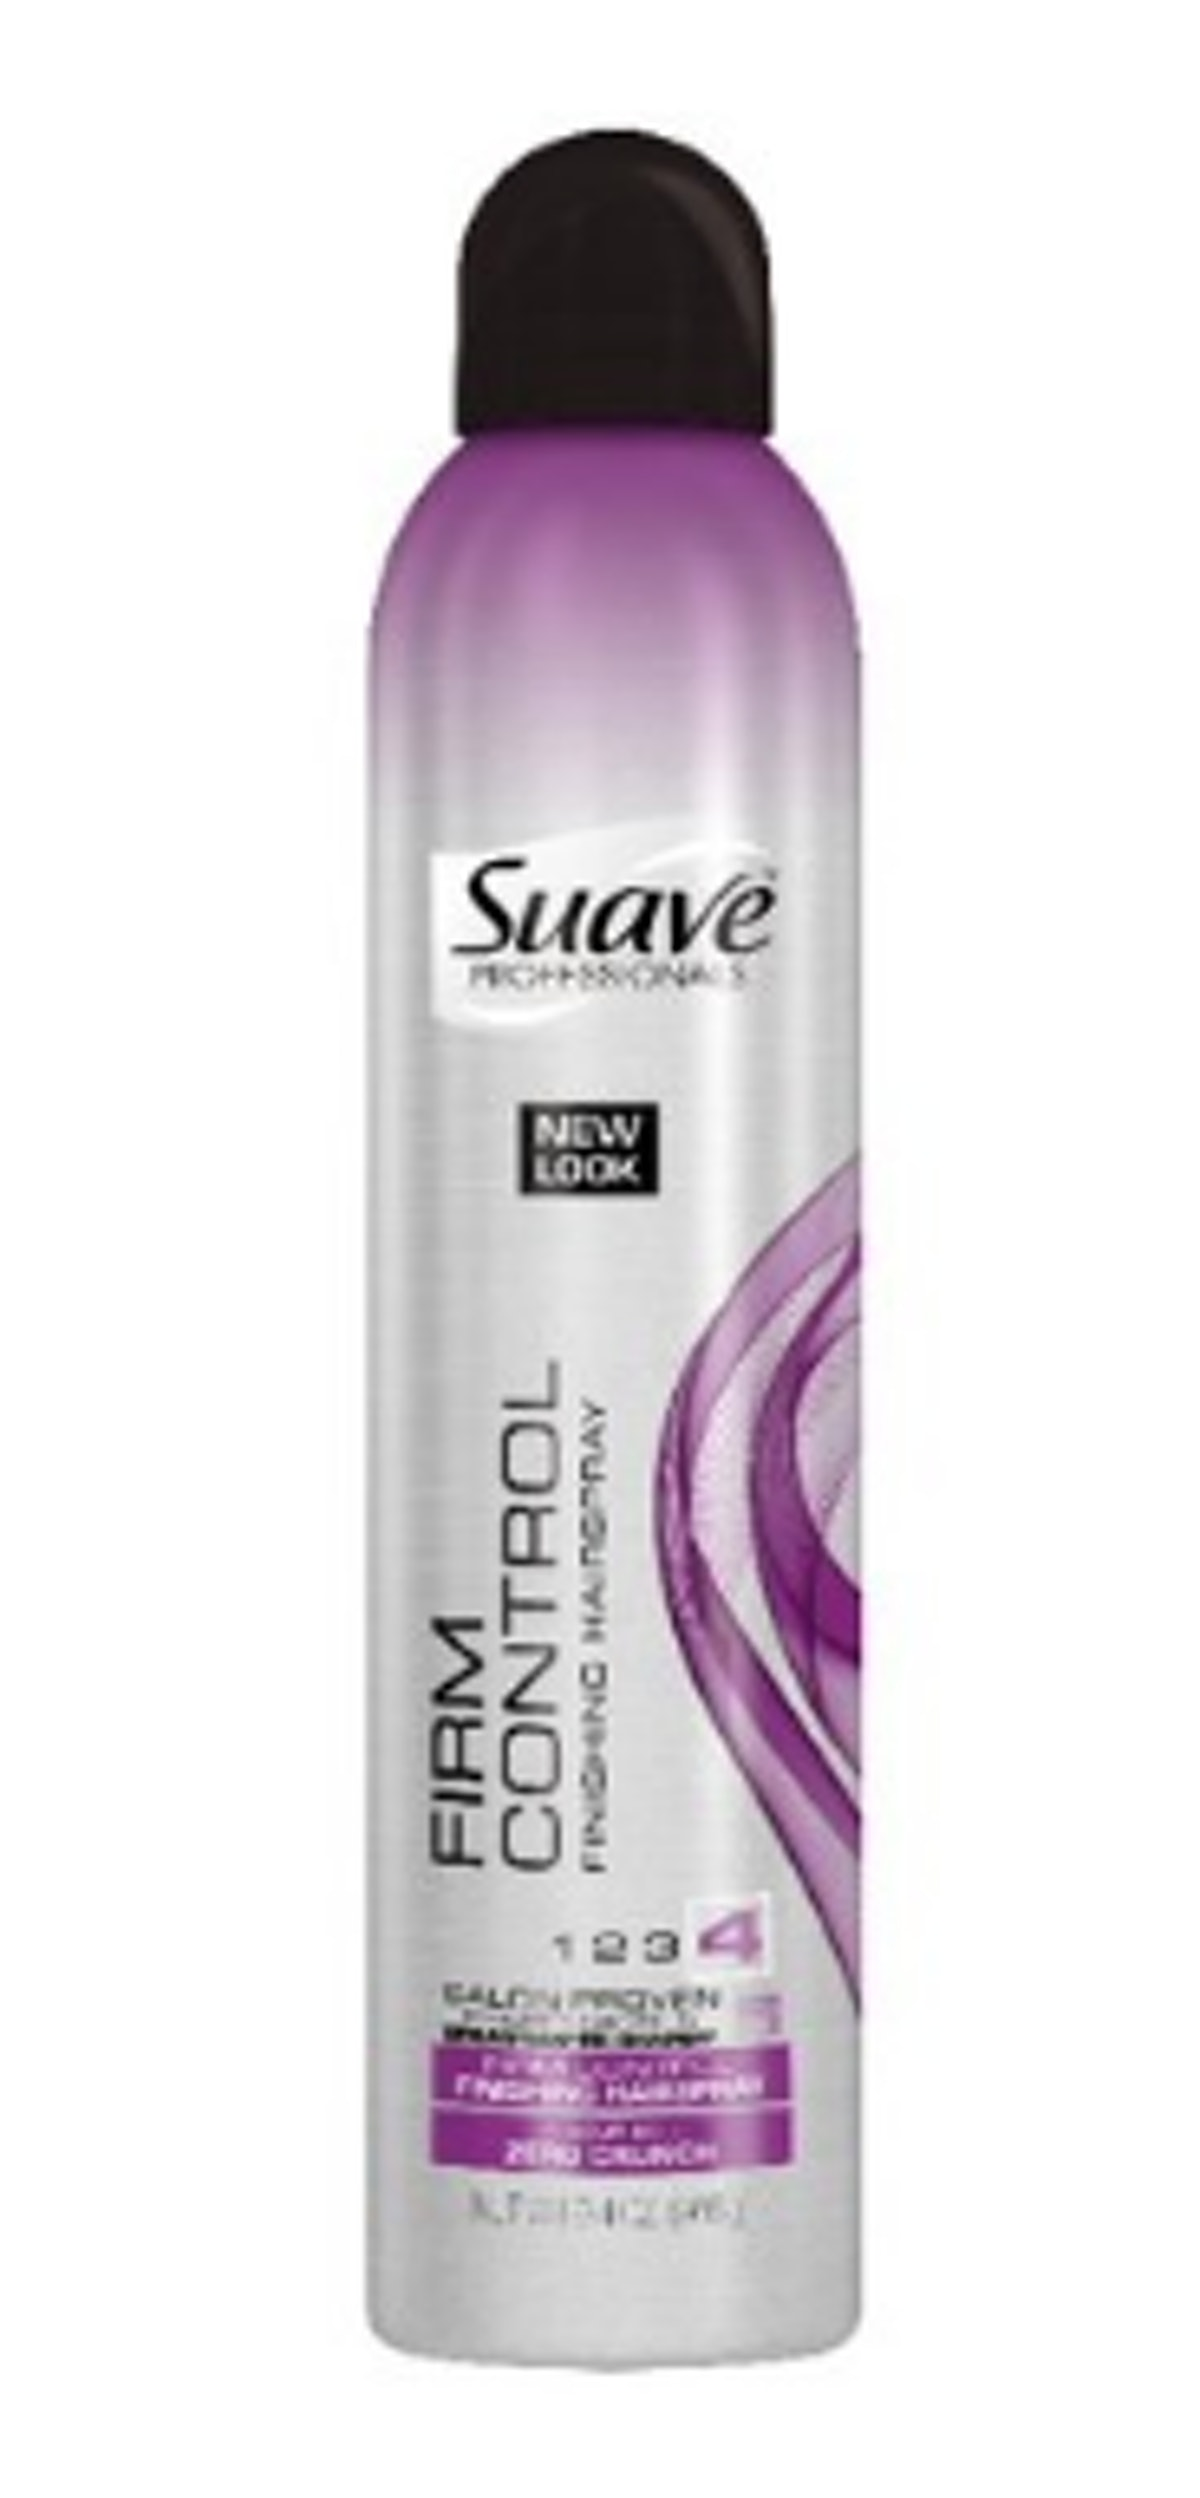 Suave Professionals Firm Control Finishing Hair Spray